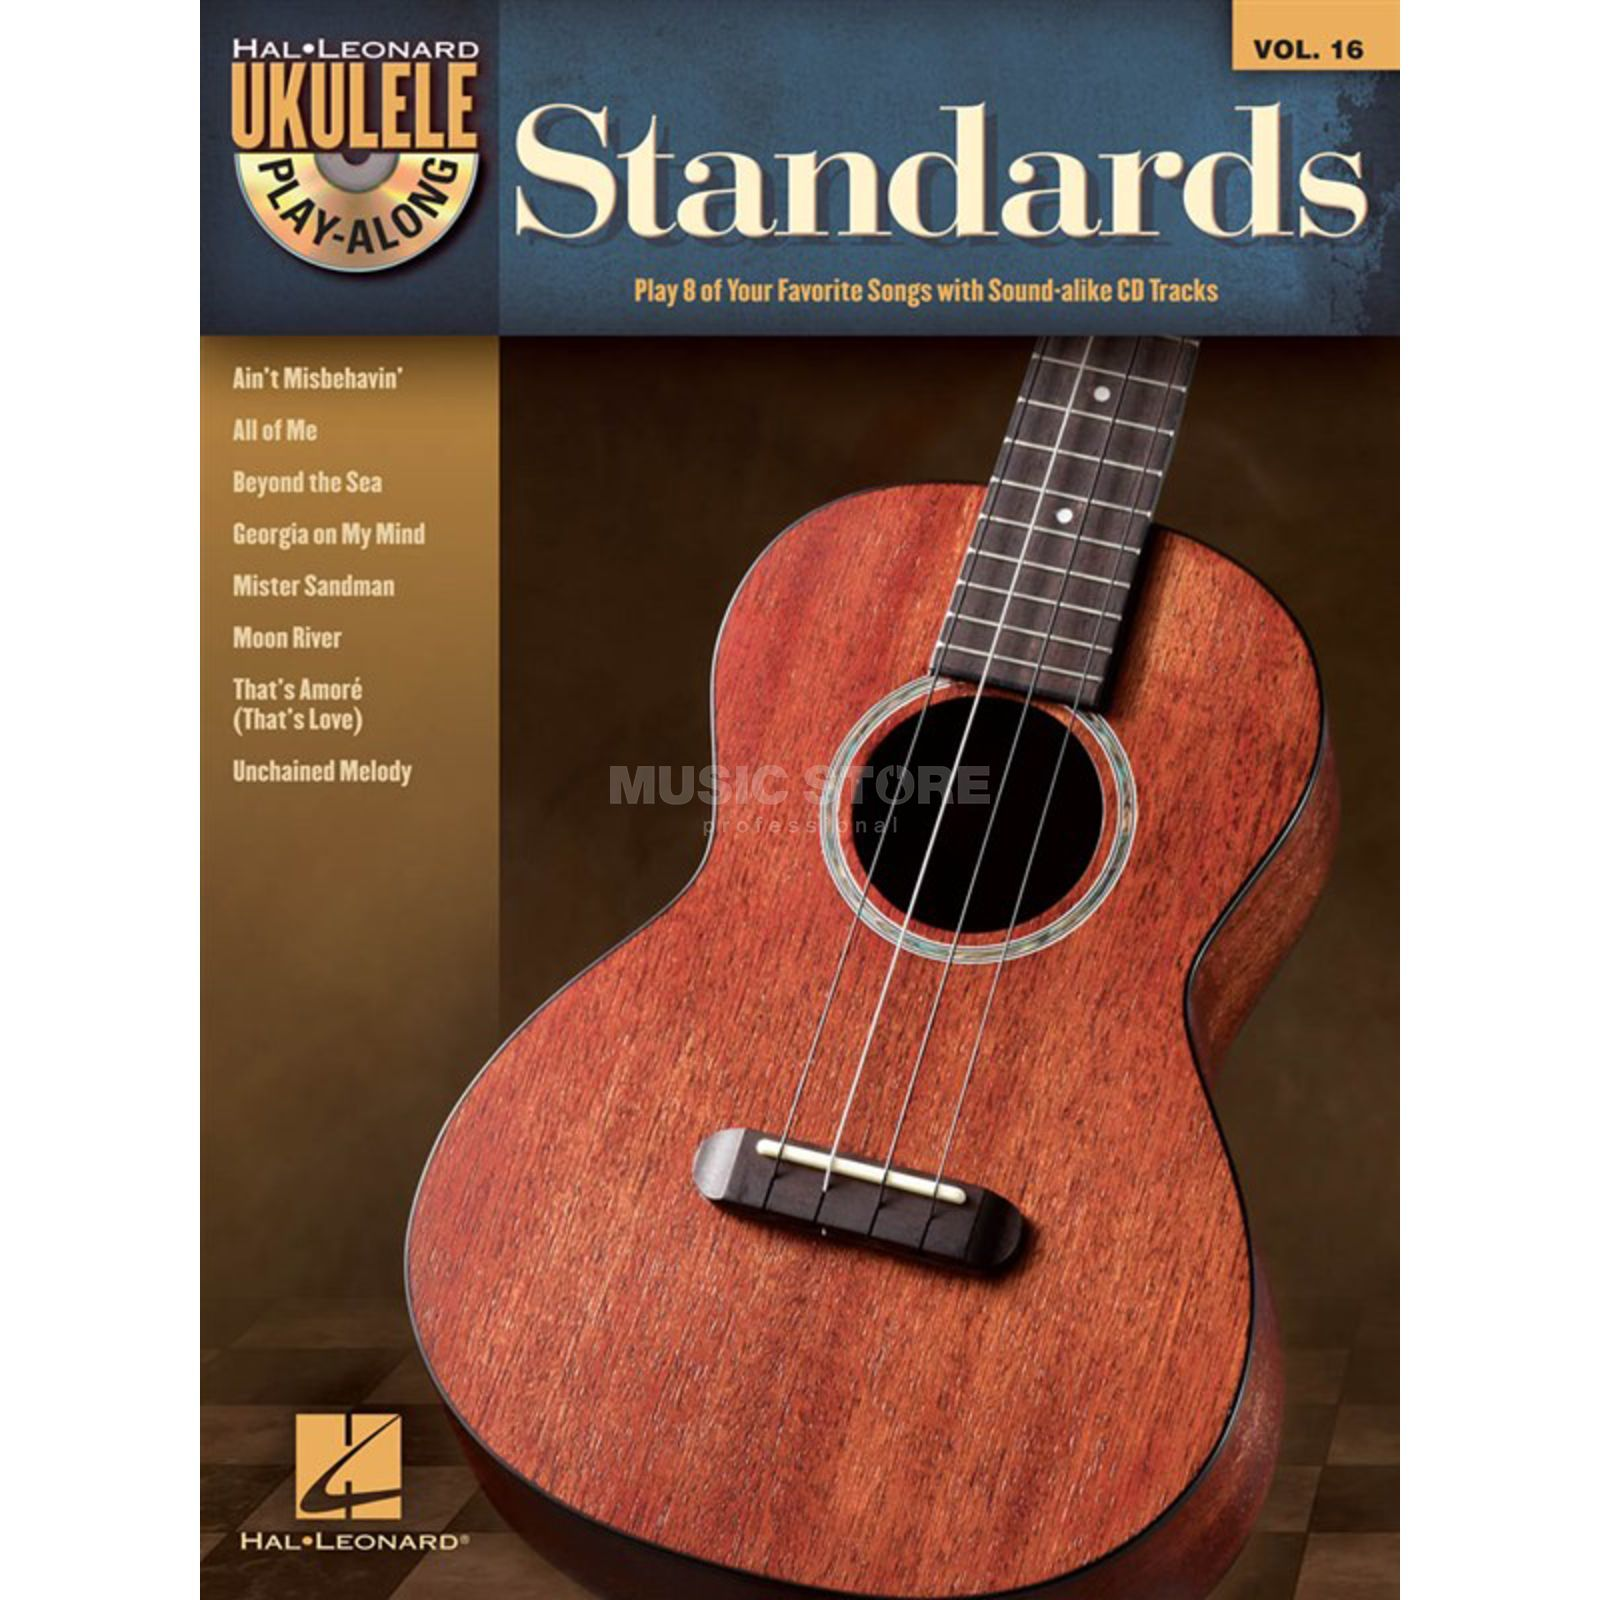 Hal Leonard Ukulele Play-Along: Standards Vol. 26, Ukulele incl. CD Produktbillede